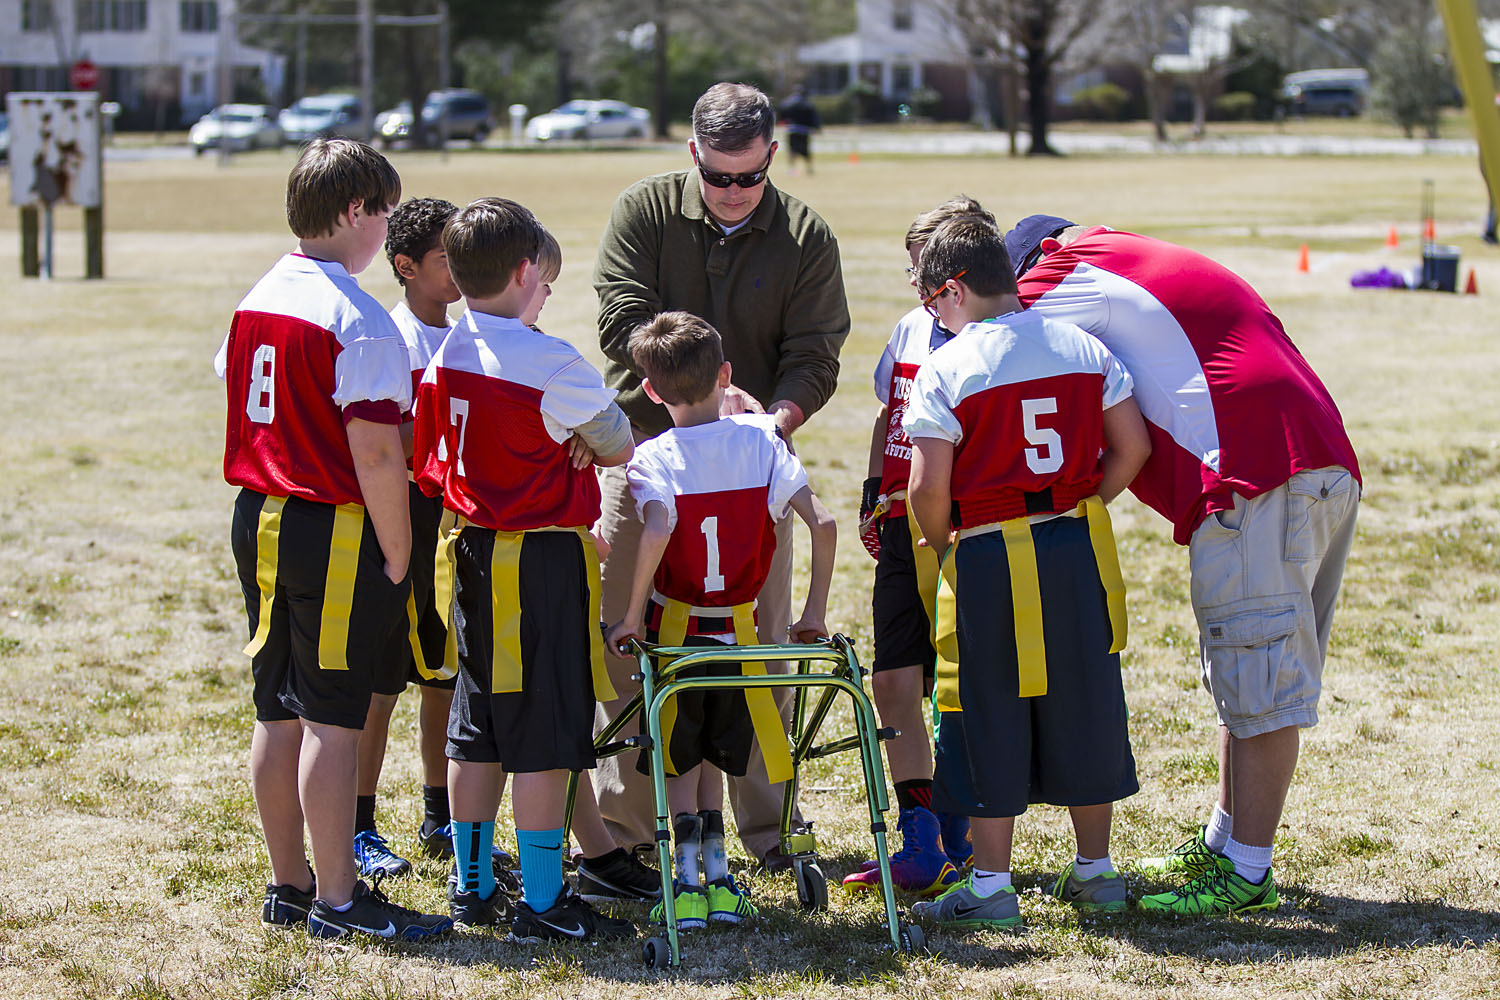 Foundation established for Trussville youth sports